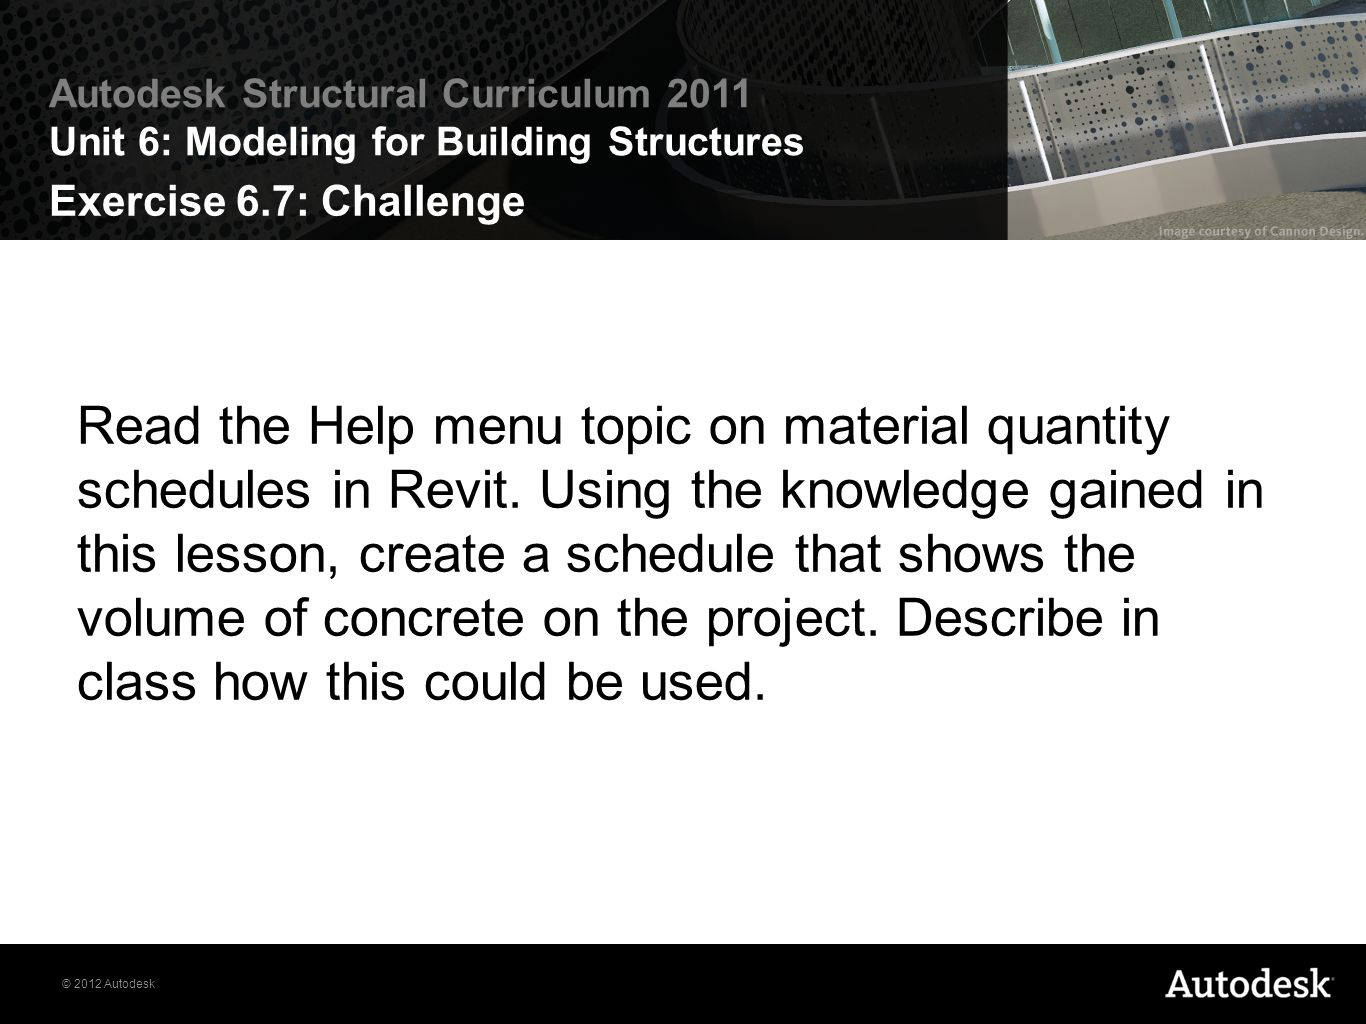 © 2012 Autodesk Autodesk Structural Curriculum 2011 Unit 6: Modeling for Building Structures Exercise 6.7: Challenge Read the Help menu topic on mater